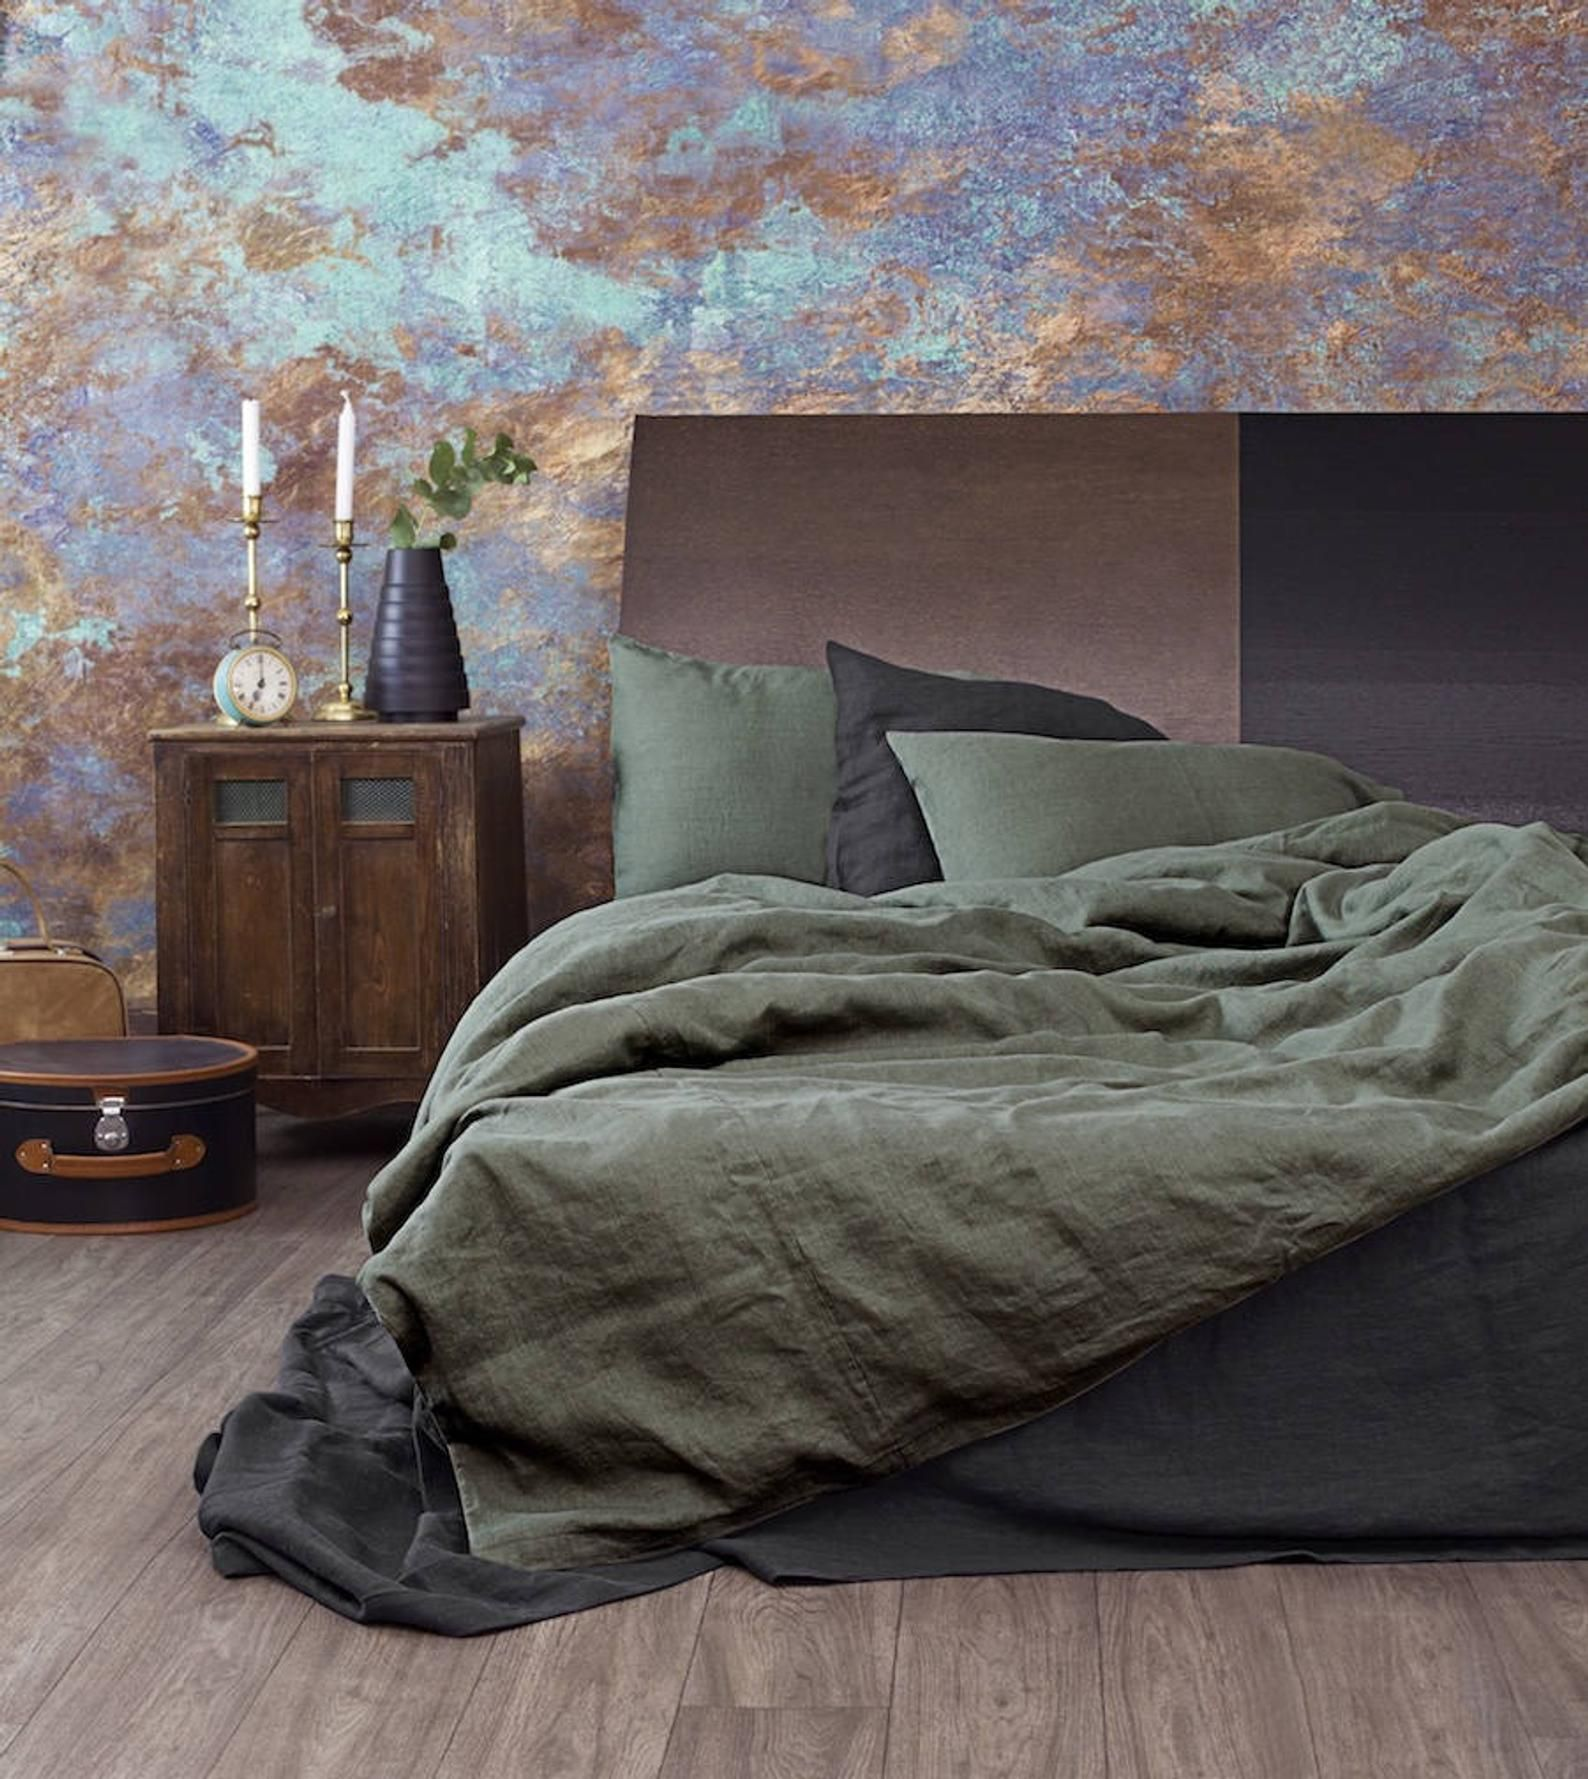 Linen Duvet Cover in Moss Green in Queen, King sizes in